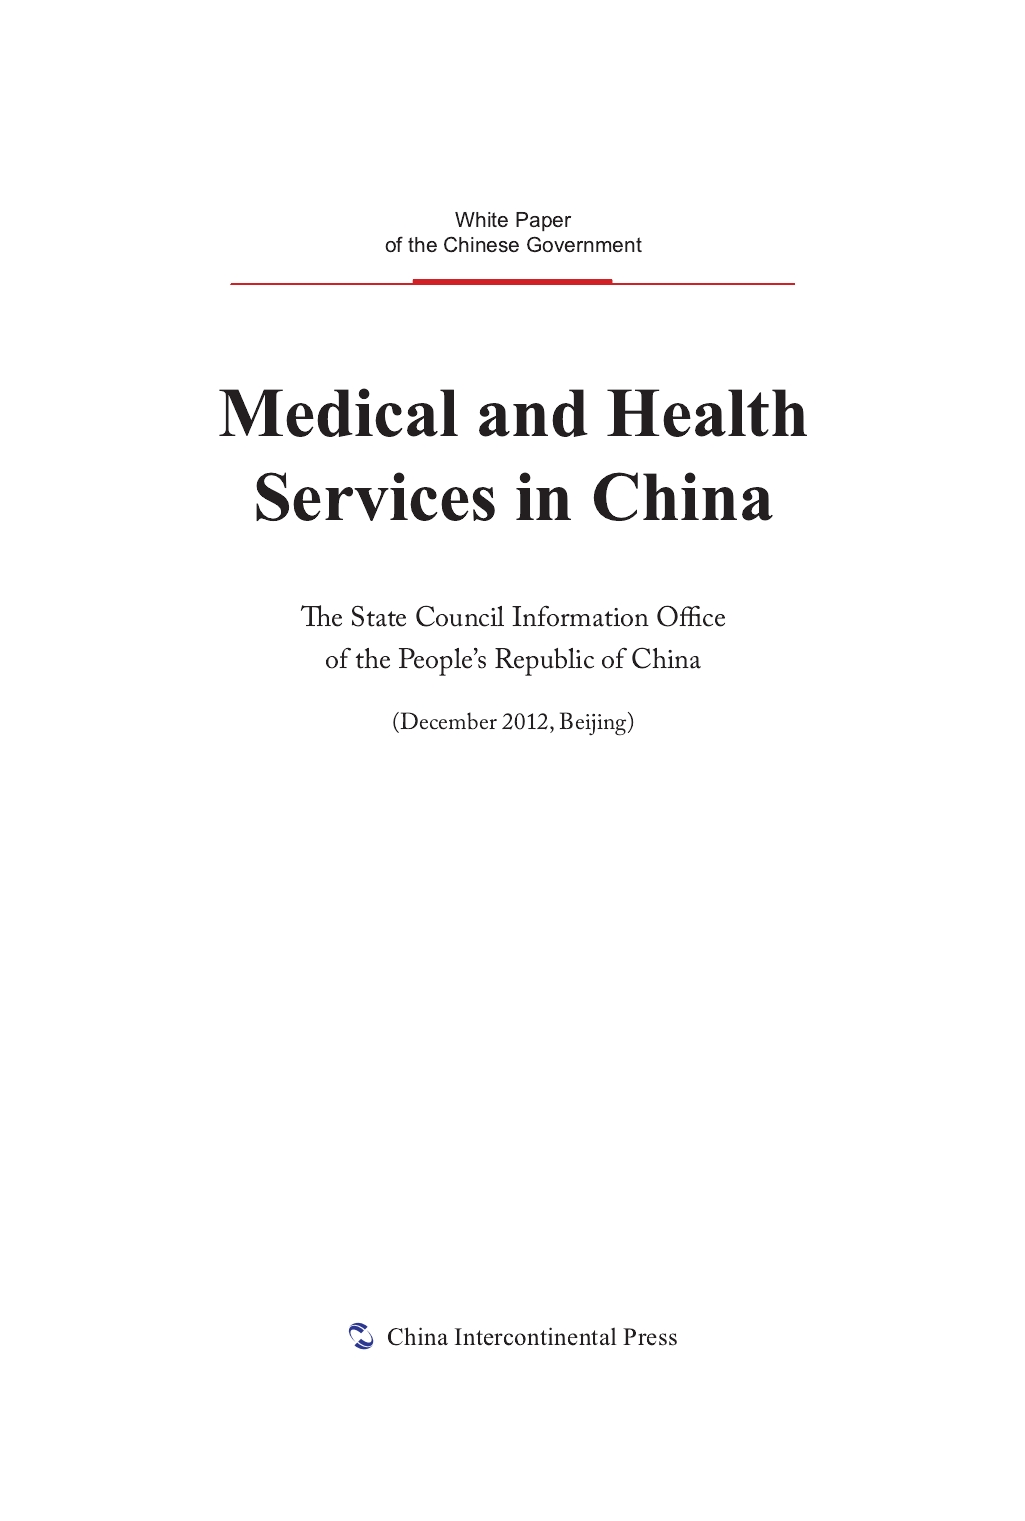 Medical and Health Services in China